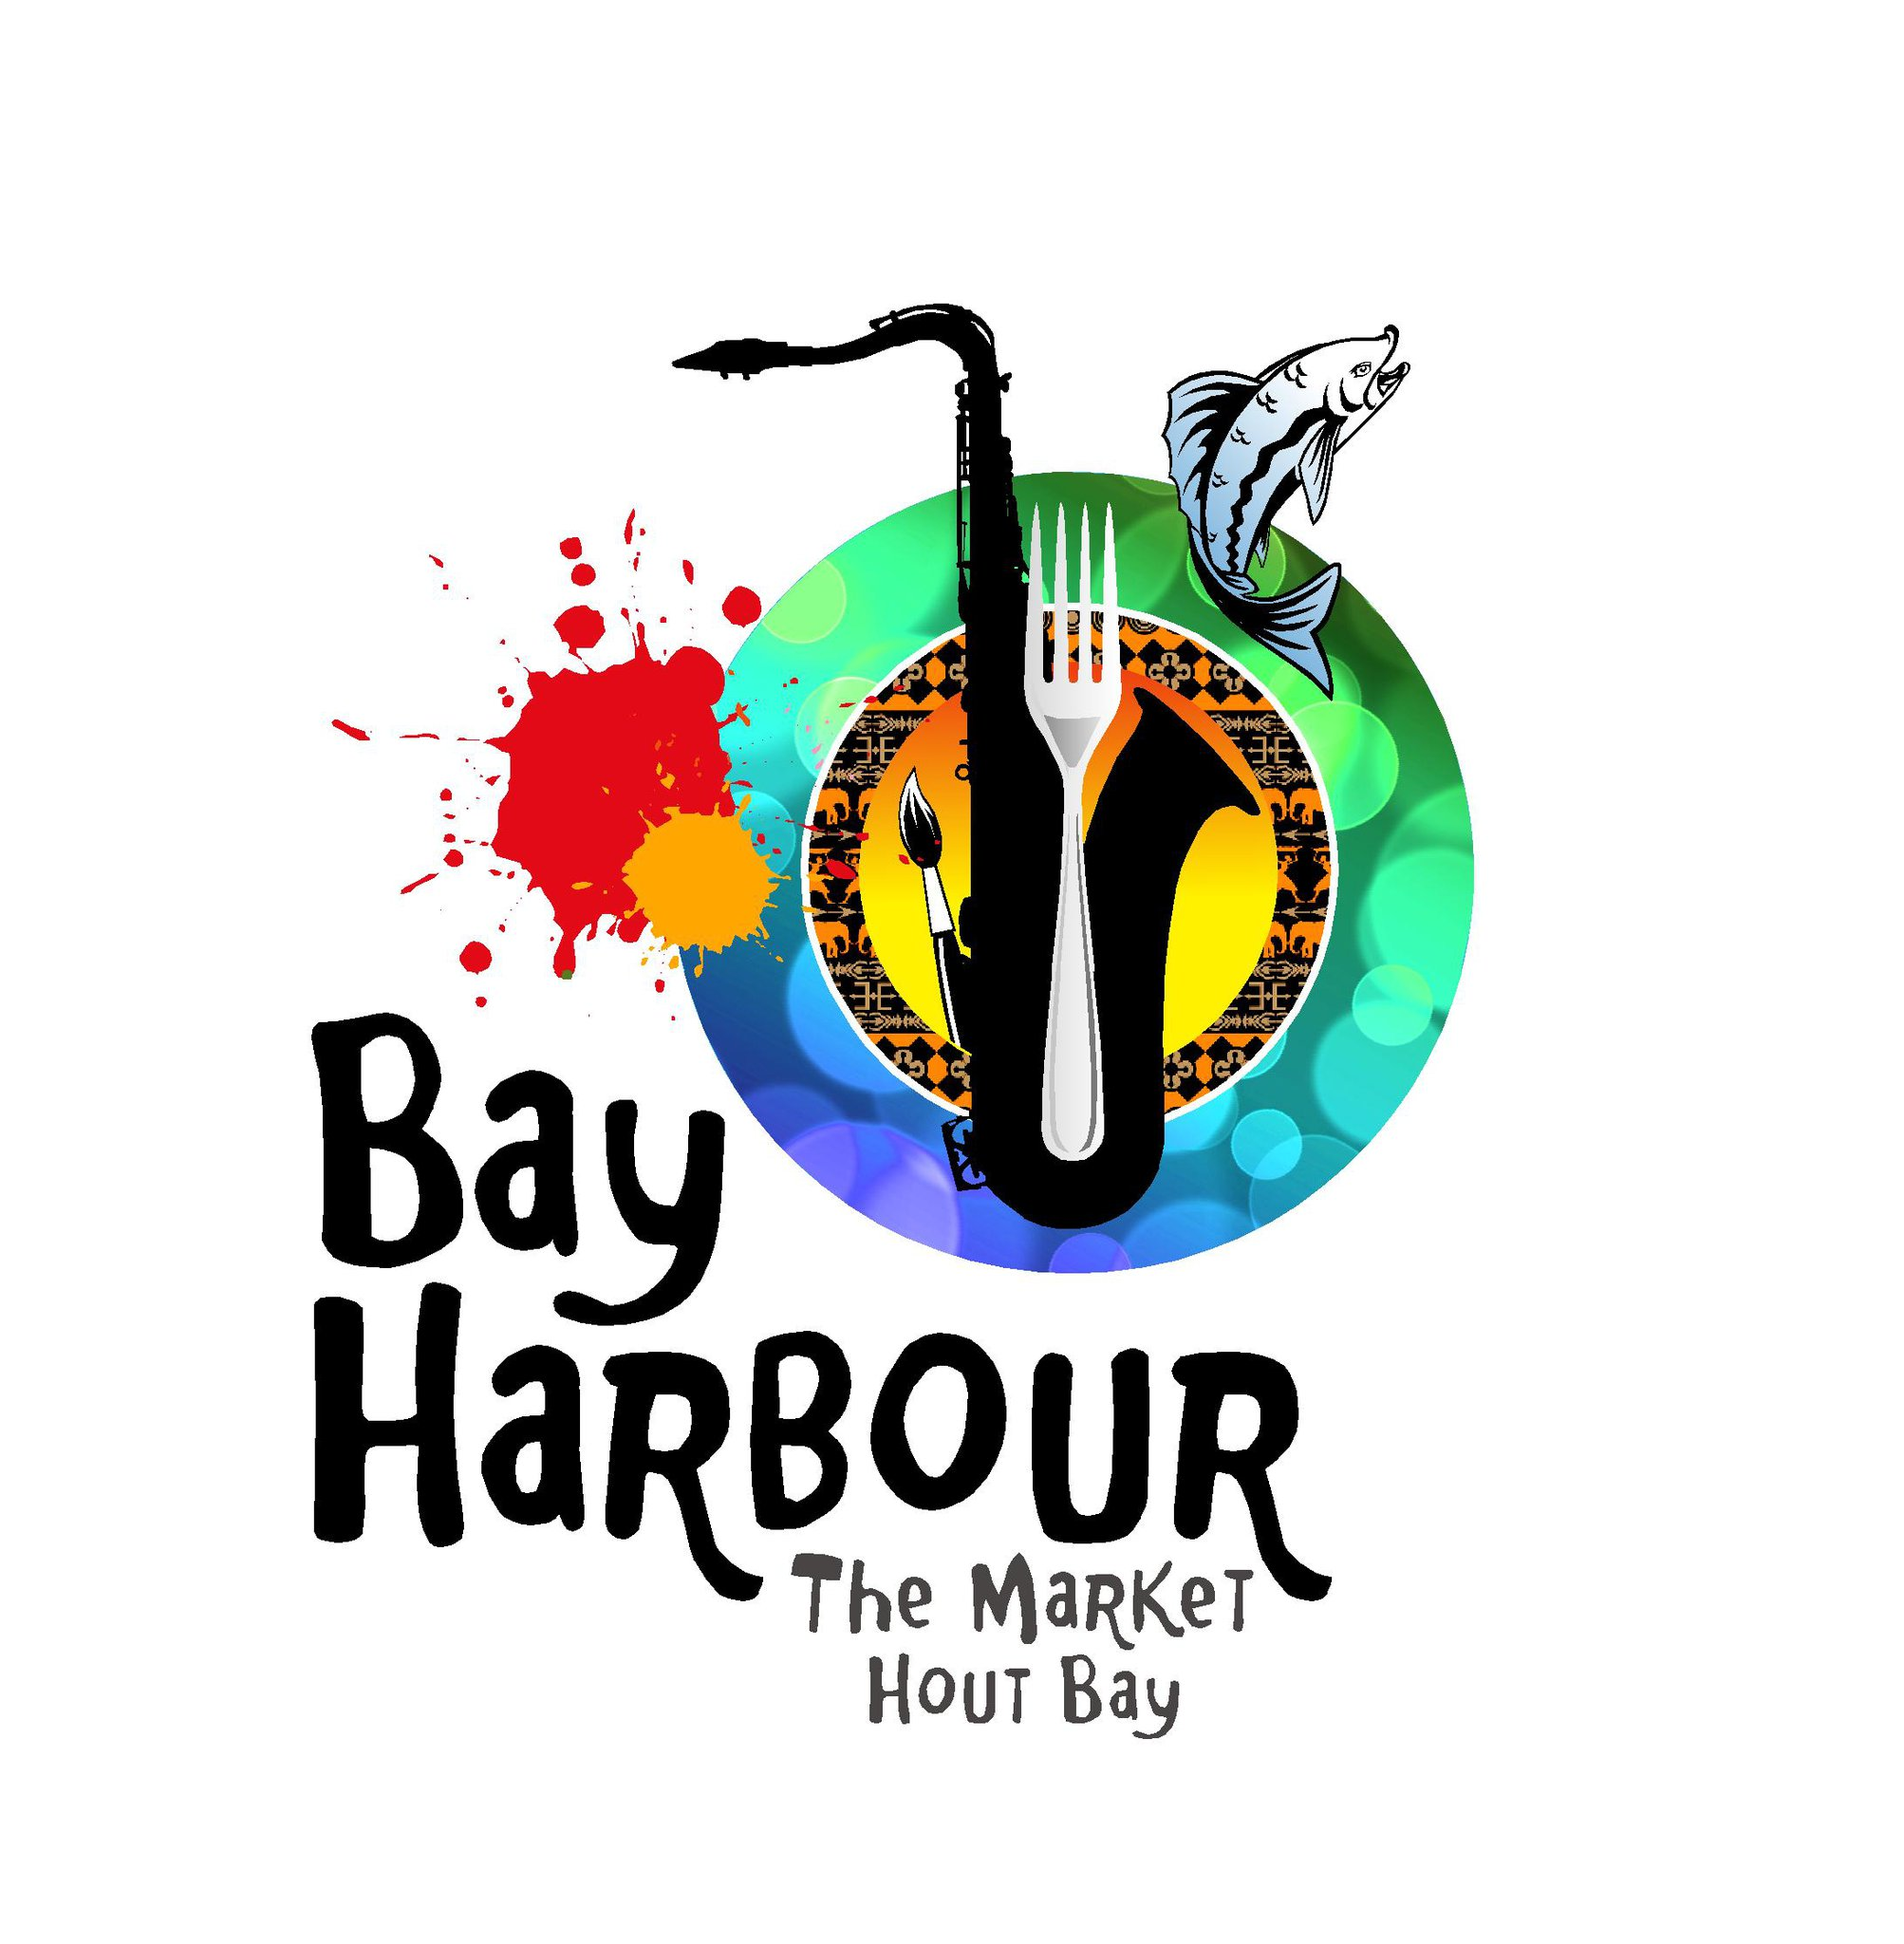 Bay Harbour Market in Hout Bay.